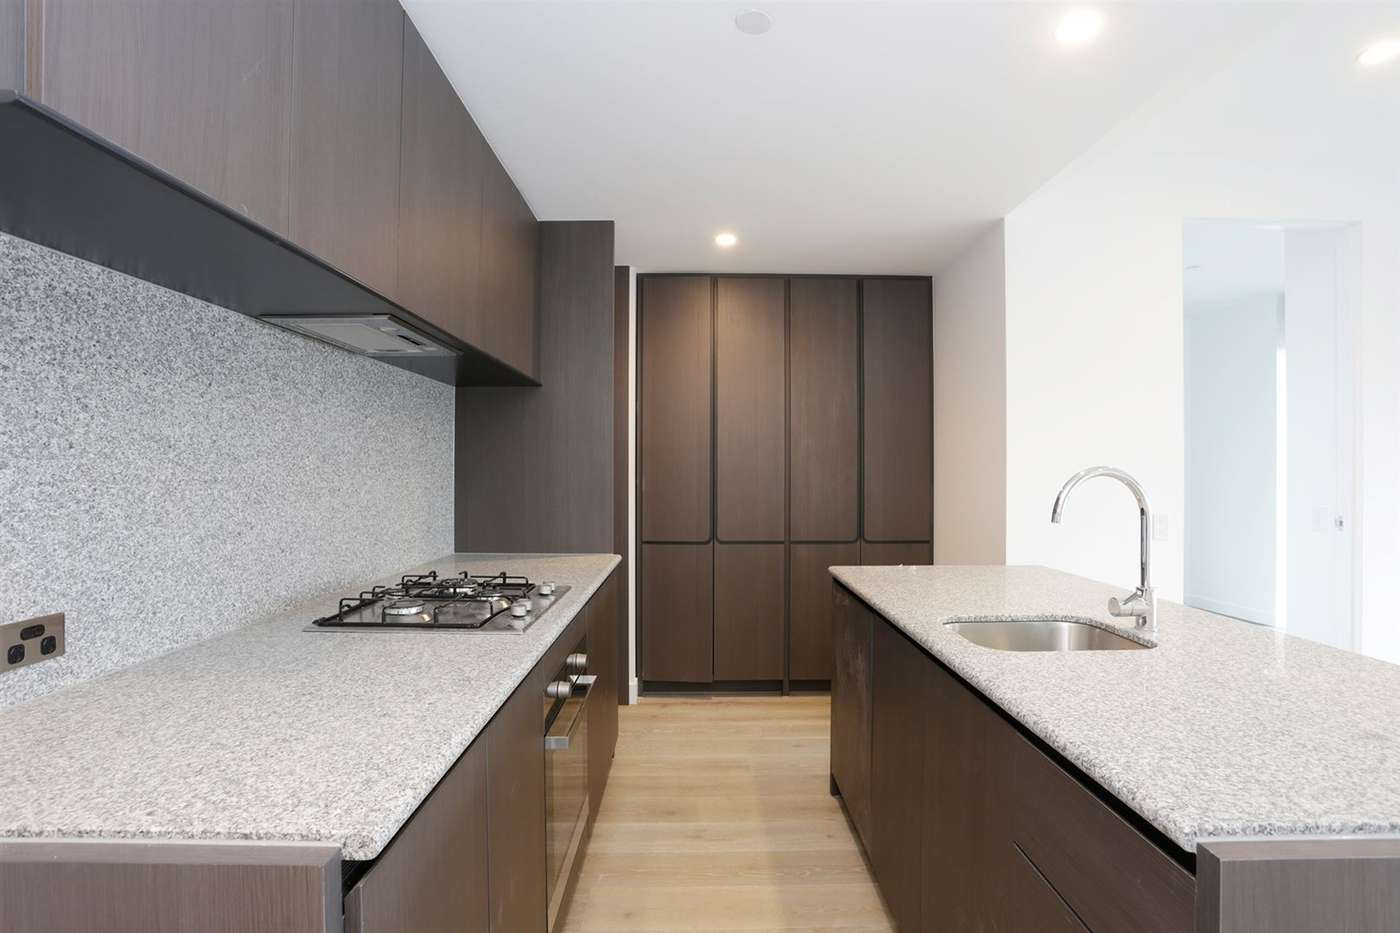 Main view of Homely apartment listing, 4212/170 Victoria Street, Carlton, VIC 3053